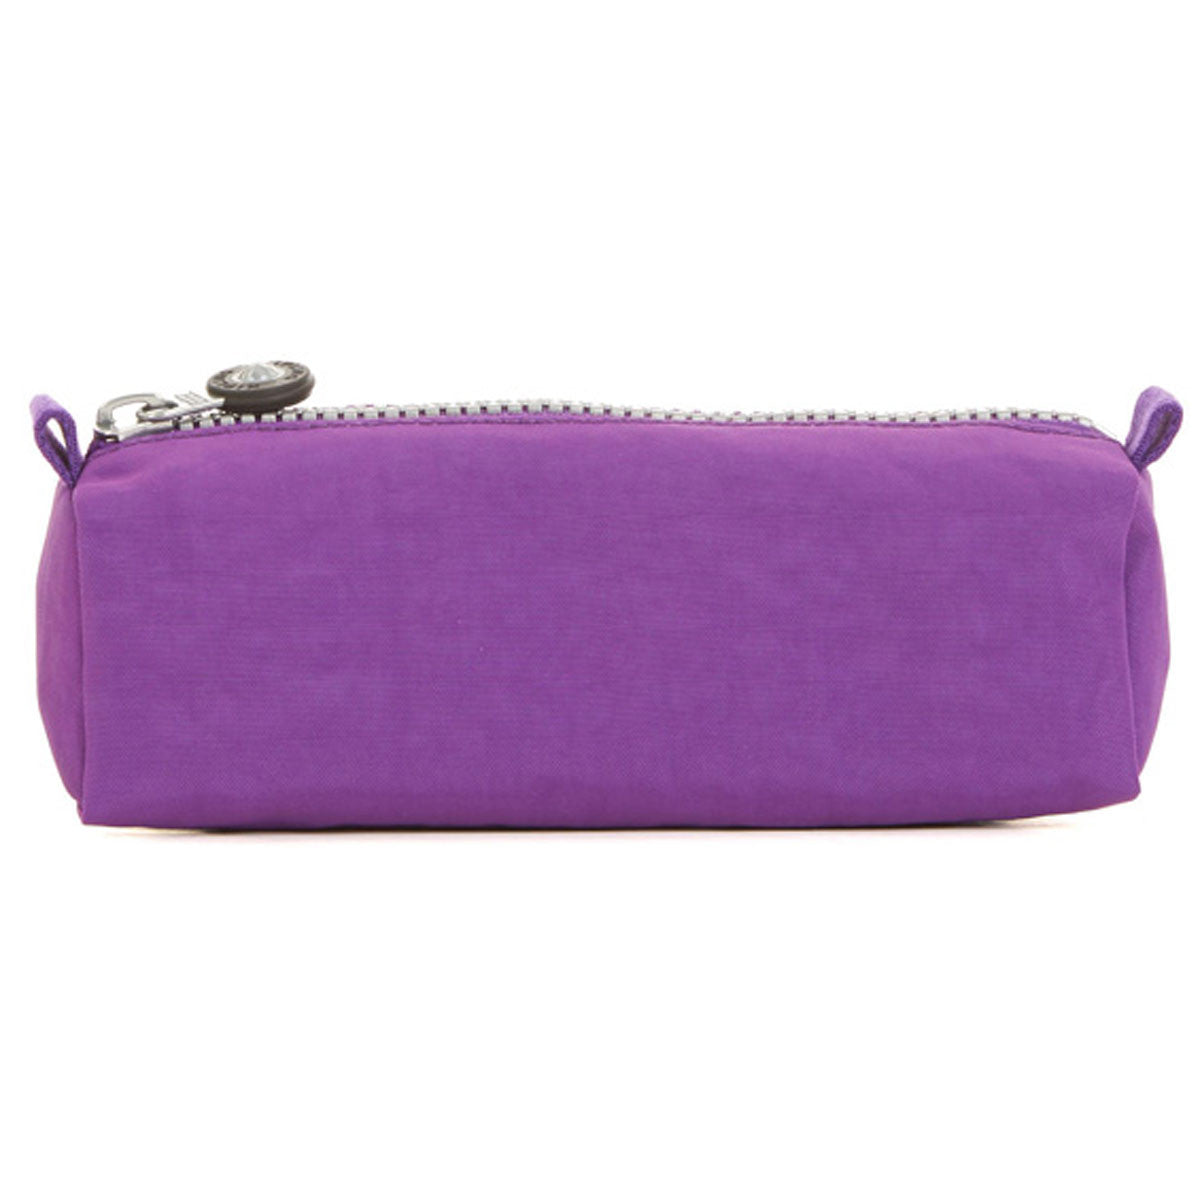 Kipling AC2397-559 Women's Fabian Top Zip Plum Orchard Crinkle Nylon Cosmetic & Pen Bag